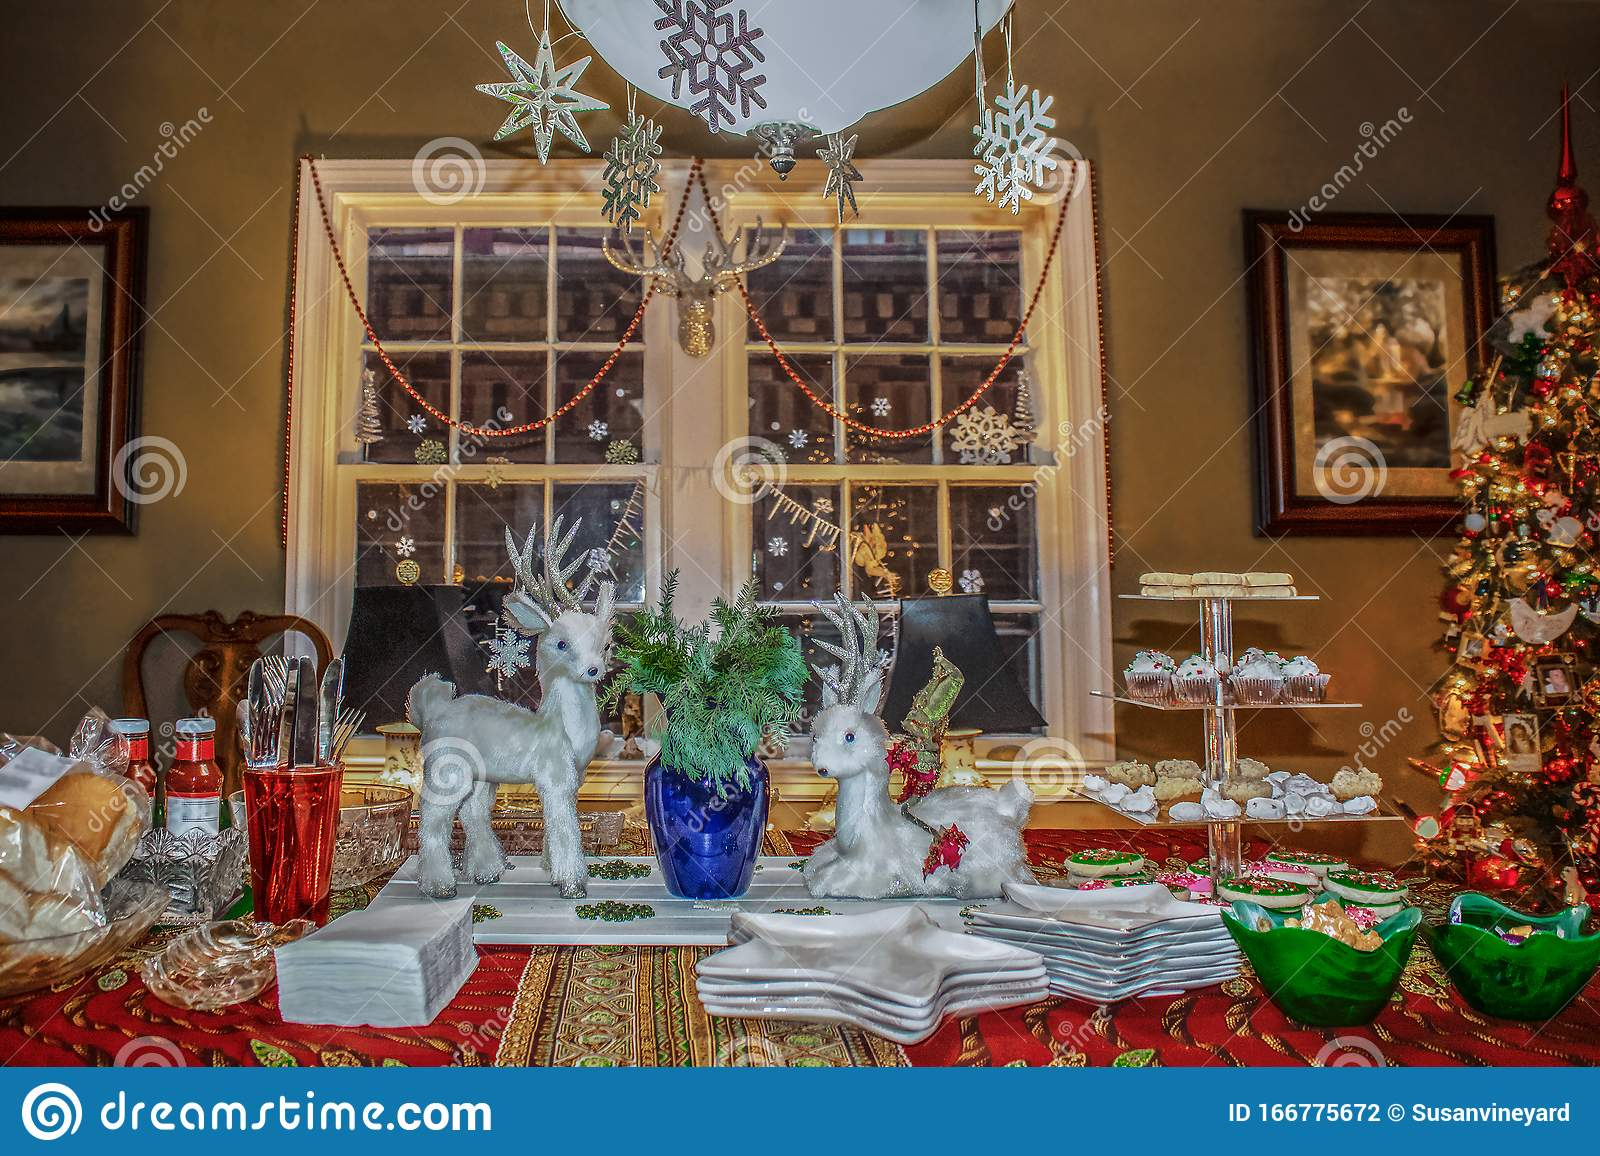 Picture of: Family Dining Room With Decorations And Christmas Tree Ready For Christmas Eve Buffet Stock Photo Image Of Celebration Living 166775672